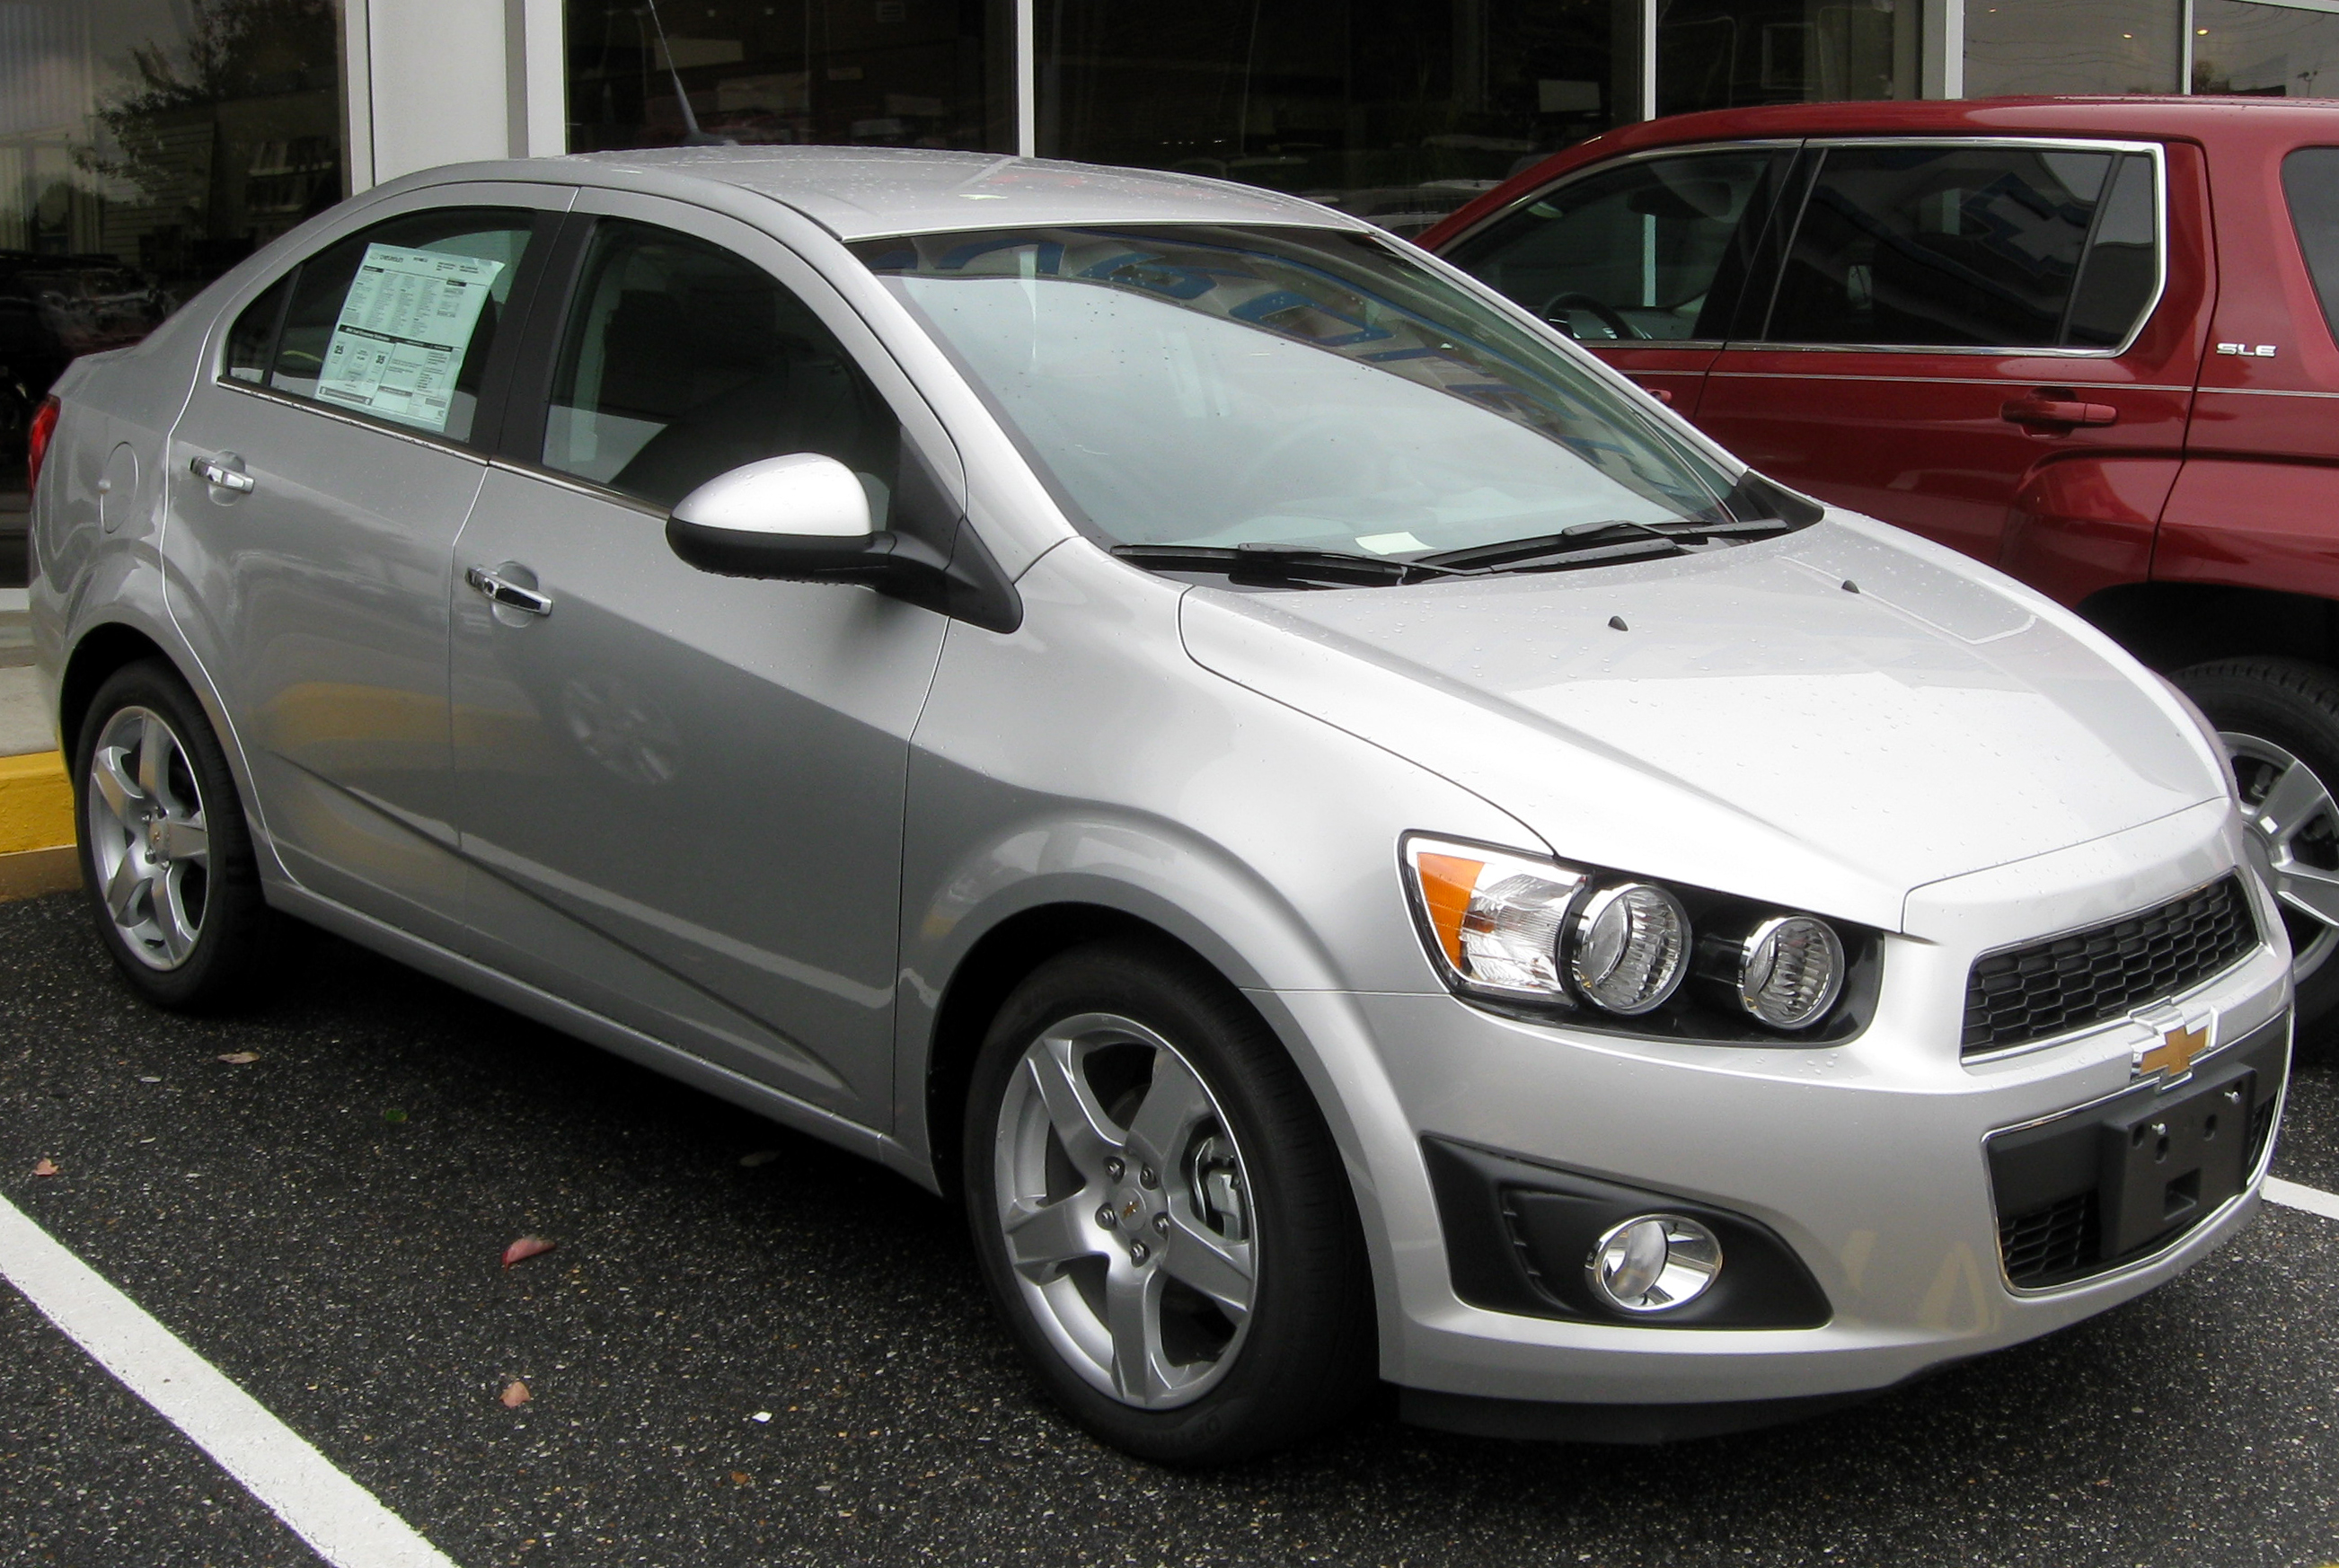 2011 chevrolet sonic sedan ltz 1 4 turbo related infomation specifications weili automotive. Black Bedroom Furniture Sets. Home Design Ideas